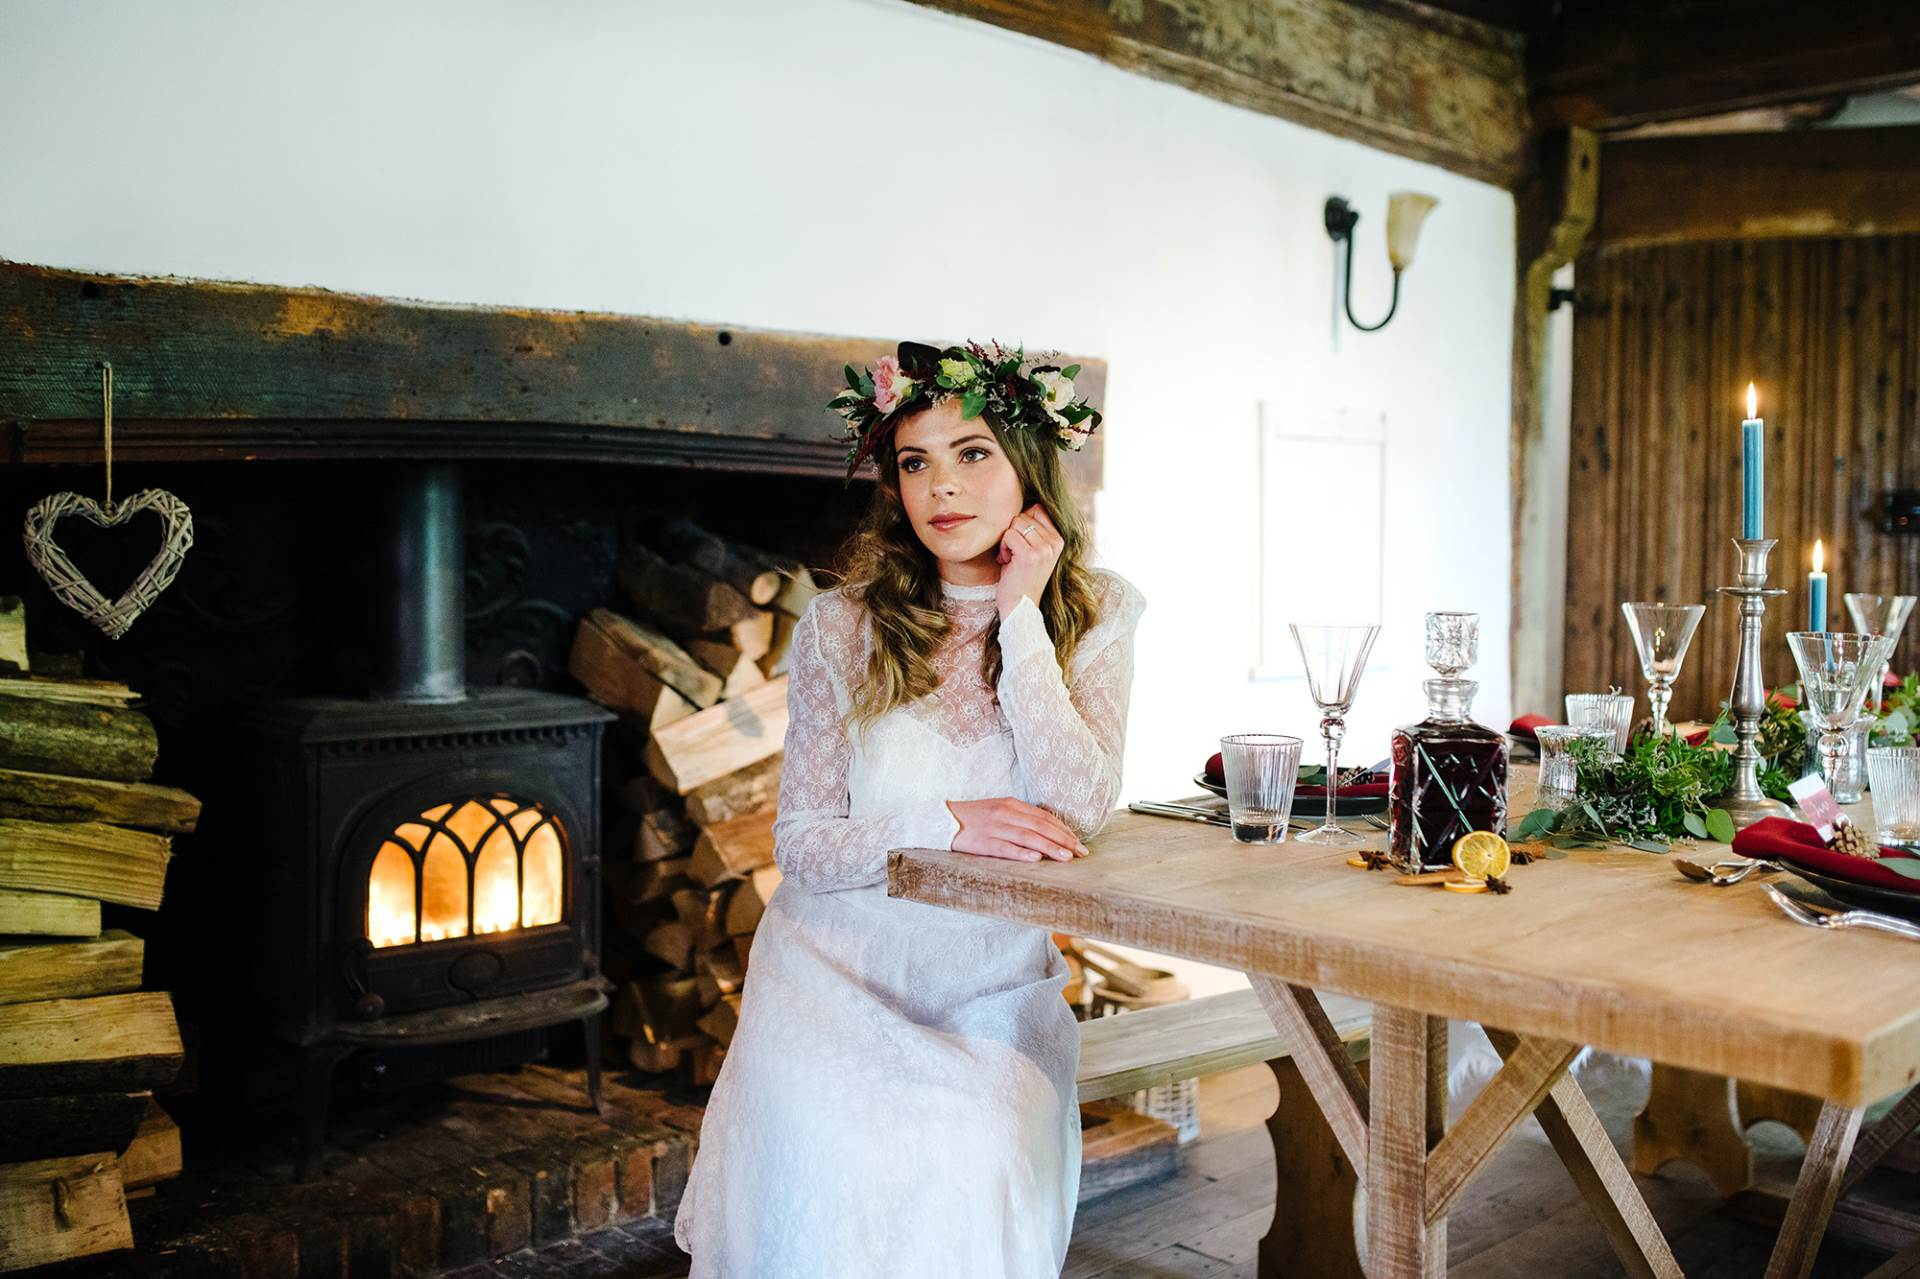 Autumnal Wedding Styled Shoot at Pilgrims Rest, Battle